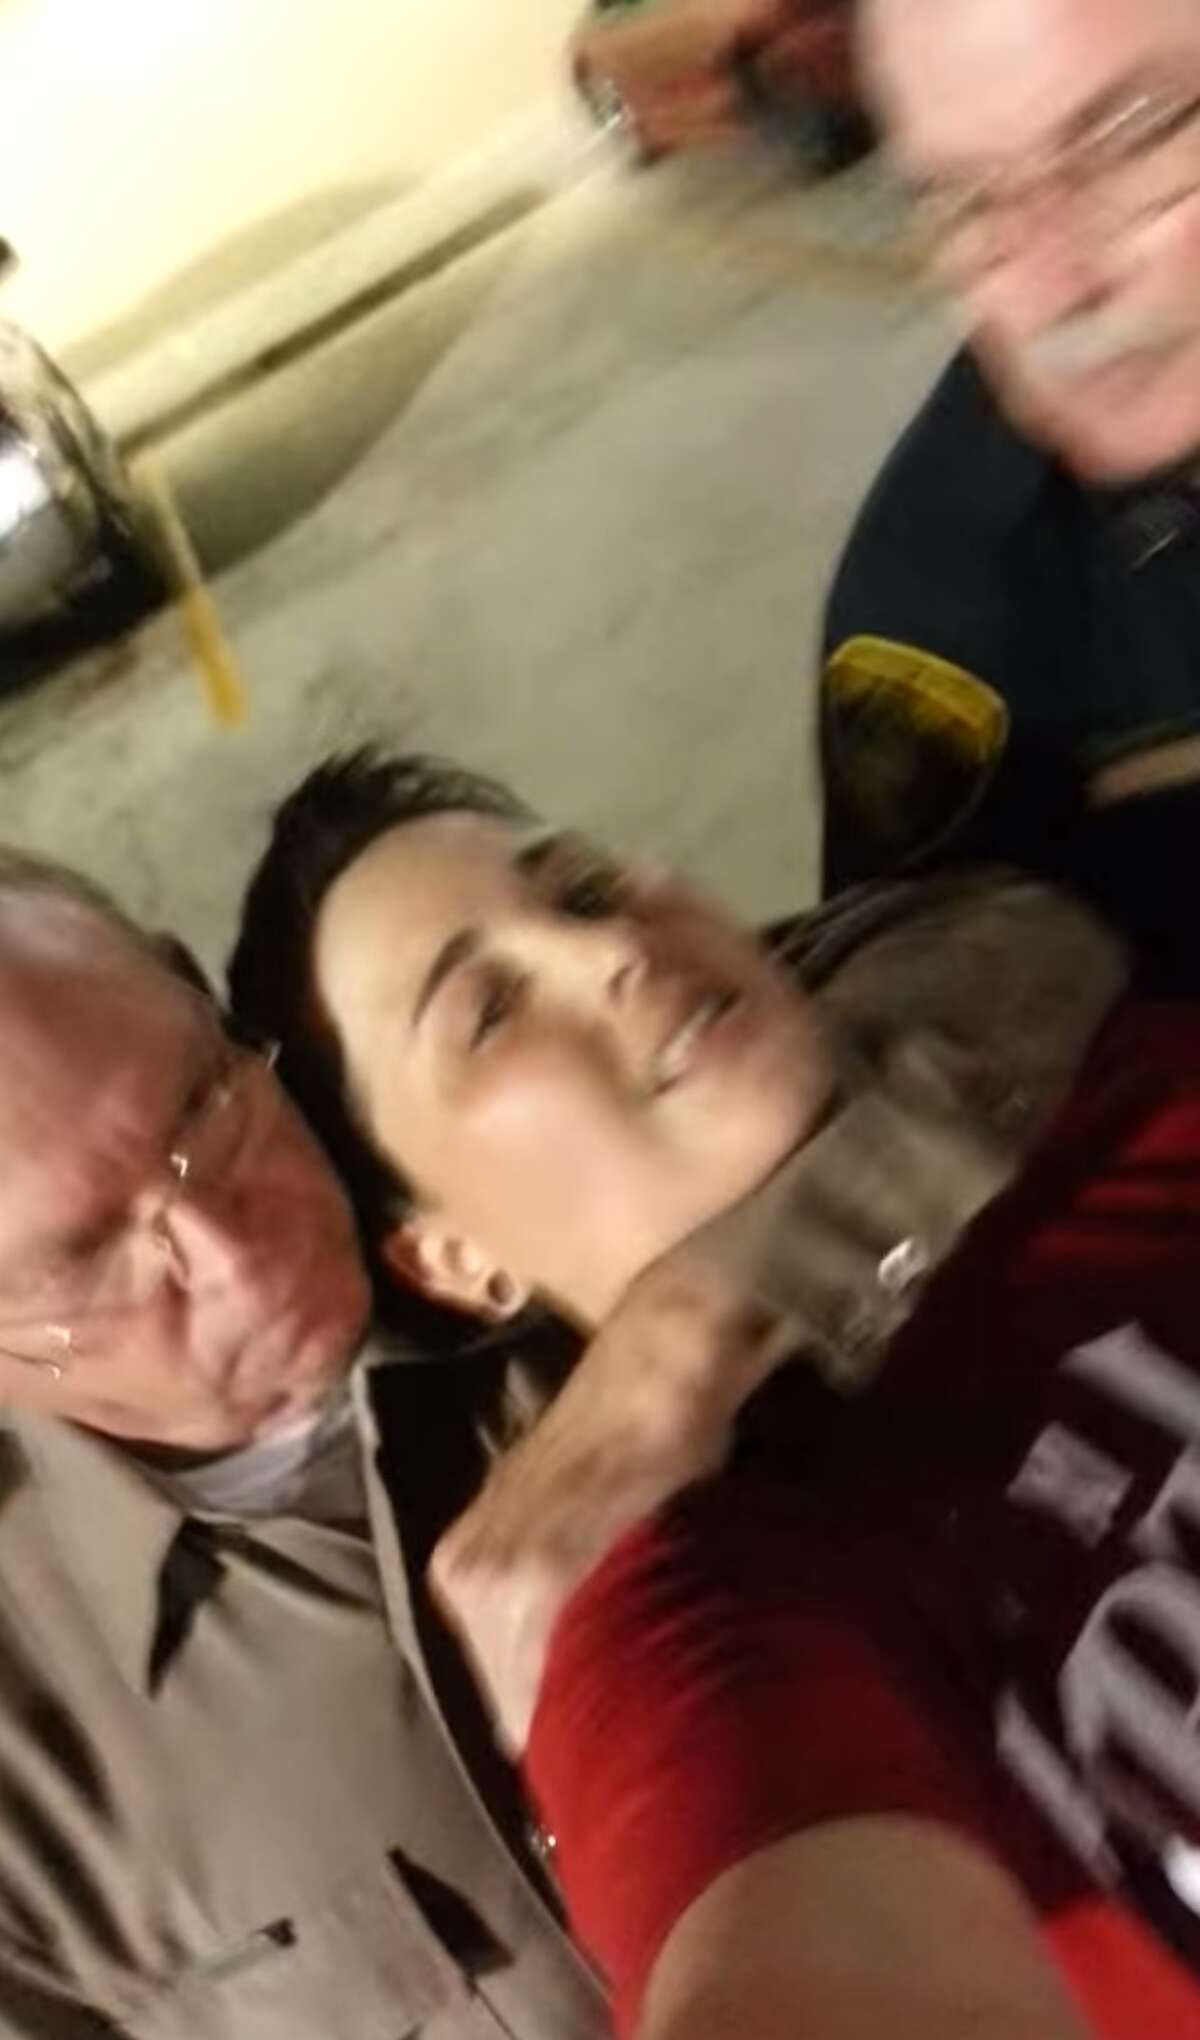 A video uploaded by Lanessa Espinosa on YouTube shows officers placing her in a choke hold. Corpus Christi Senior Officer Jerry Lockhart and an off-duty officer for the Nueces County Attorney's Office detaining her for